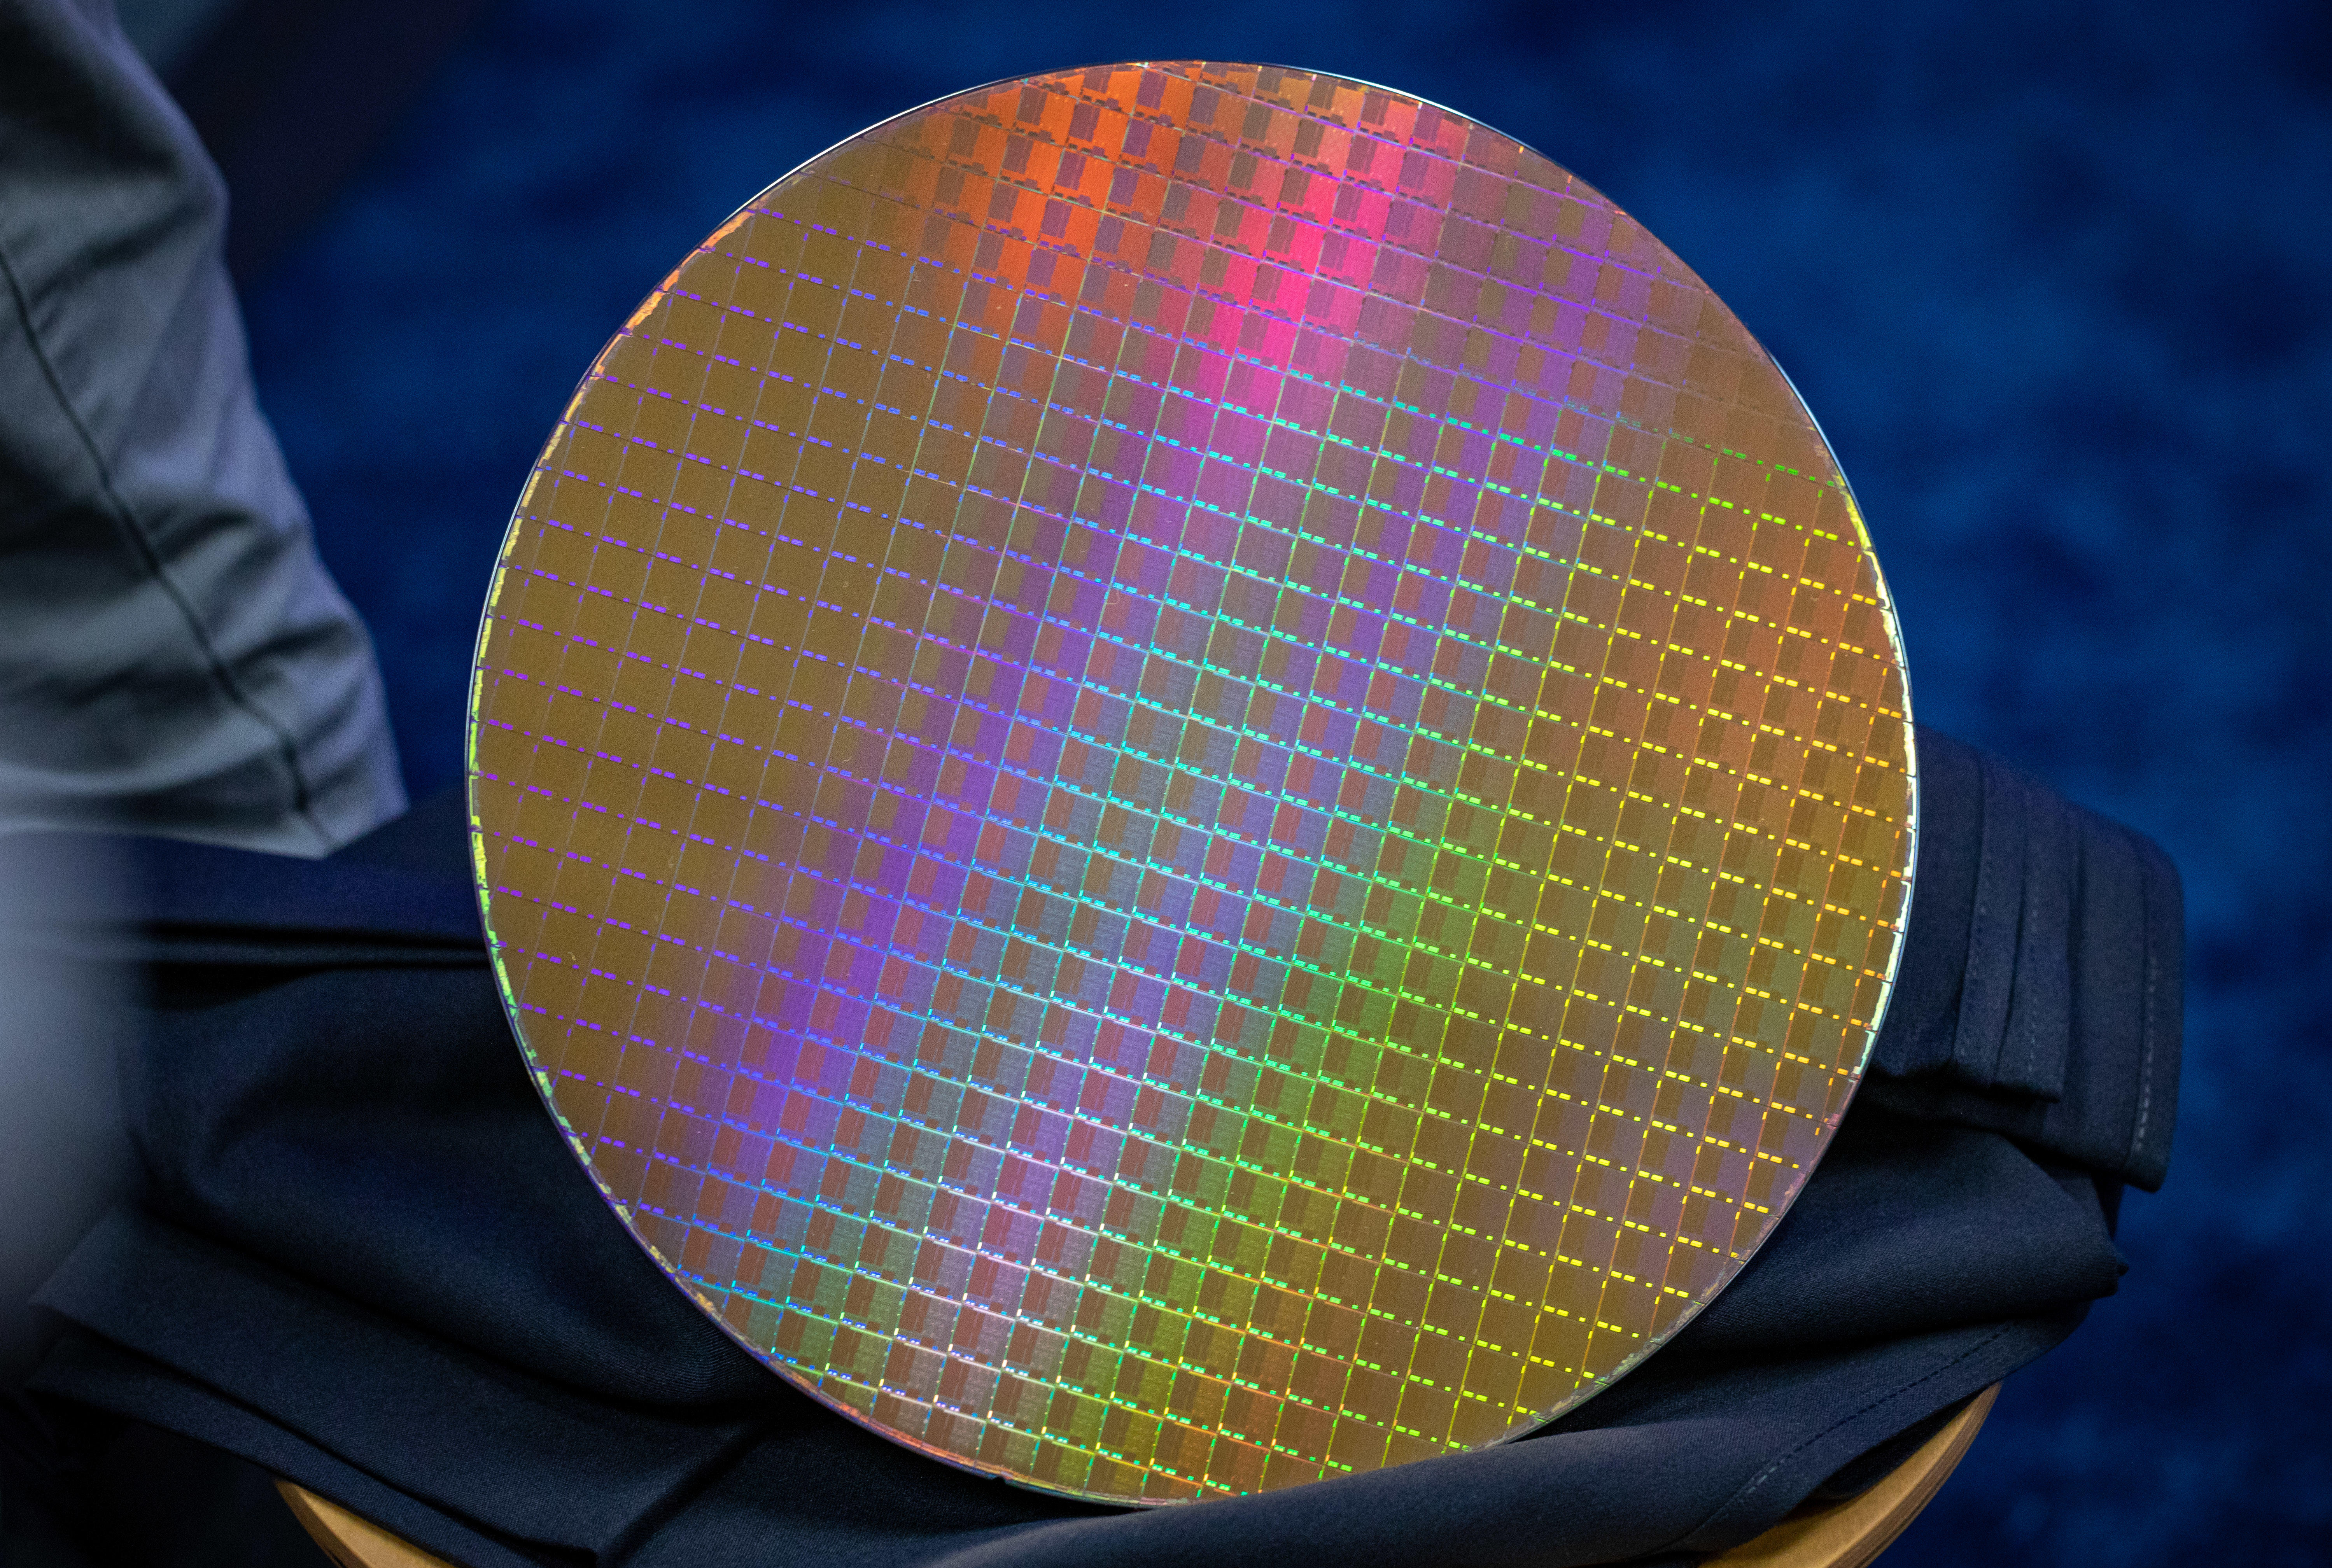 A 300mm silicon wafer covered with hundreds of Intel's new 10nm Ice Lake processors.